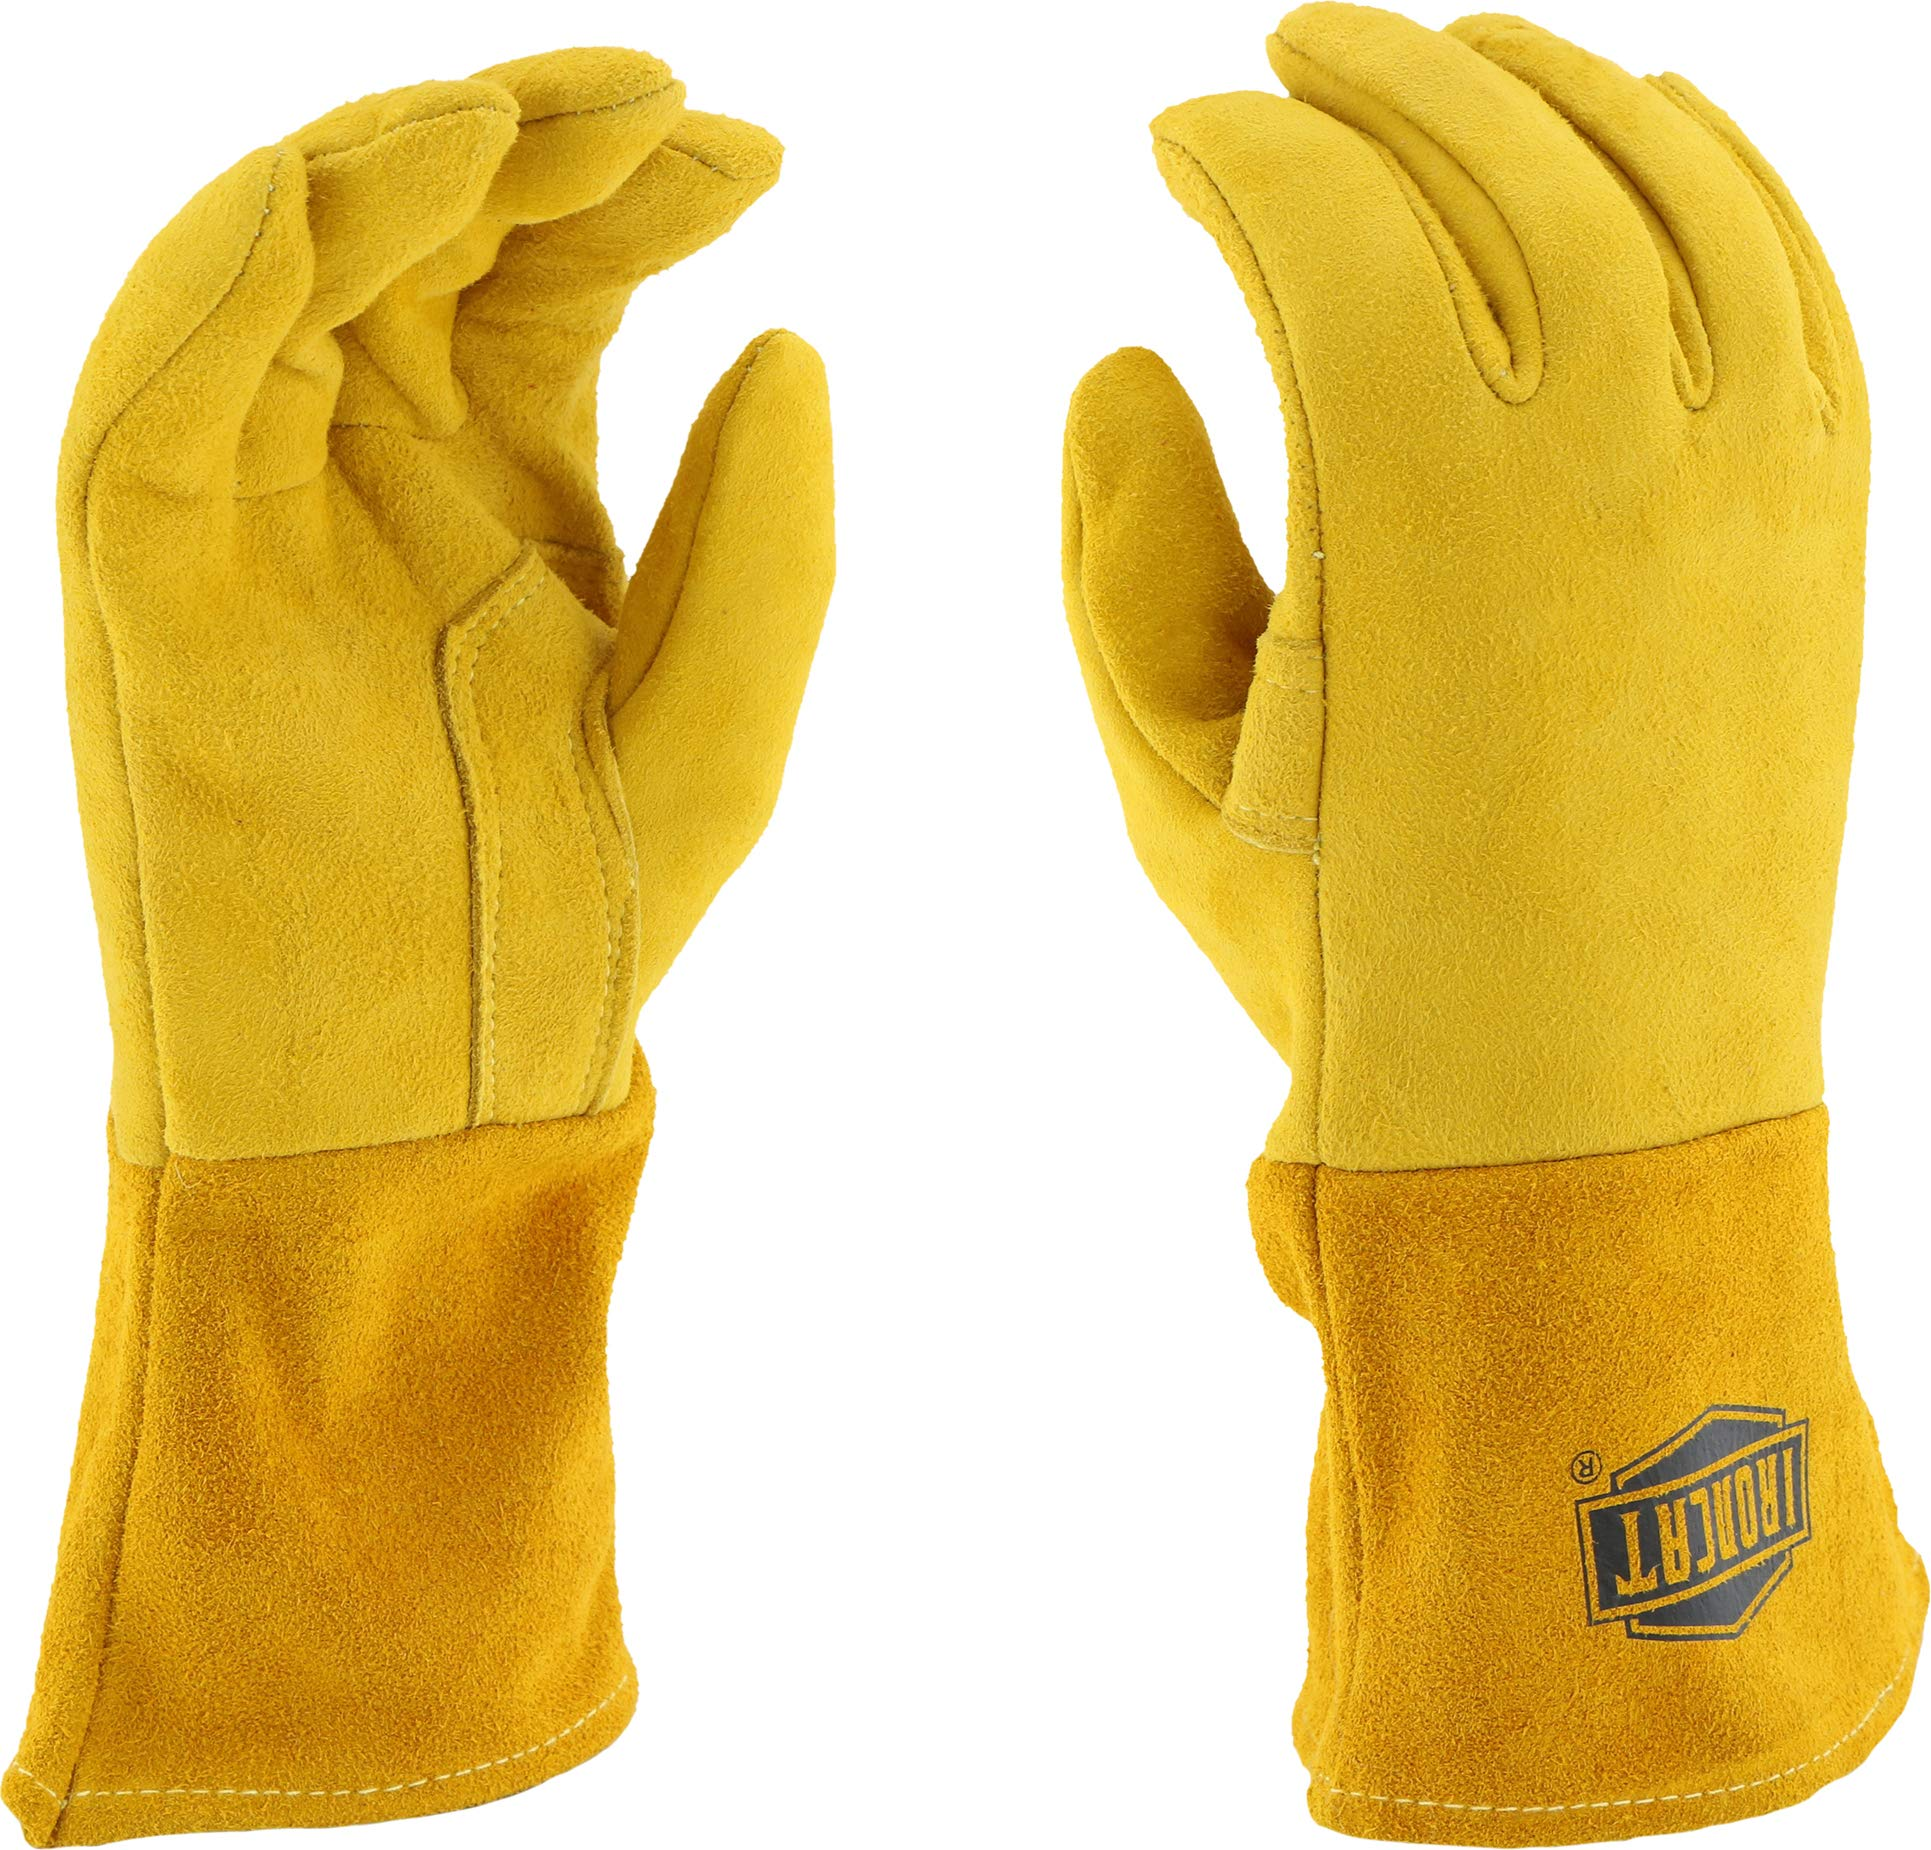 West Chester 6030 Grain Deerskin Leather Insulated Top Reverse MIG Welding Glove with 4'' Split Cuff, Work, 1.3mm Thick, Medium, Gold (Pack of 1 Pair)